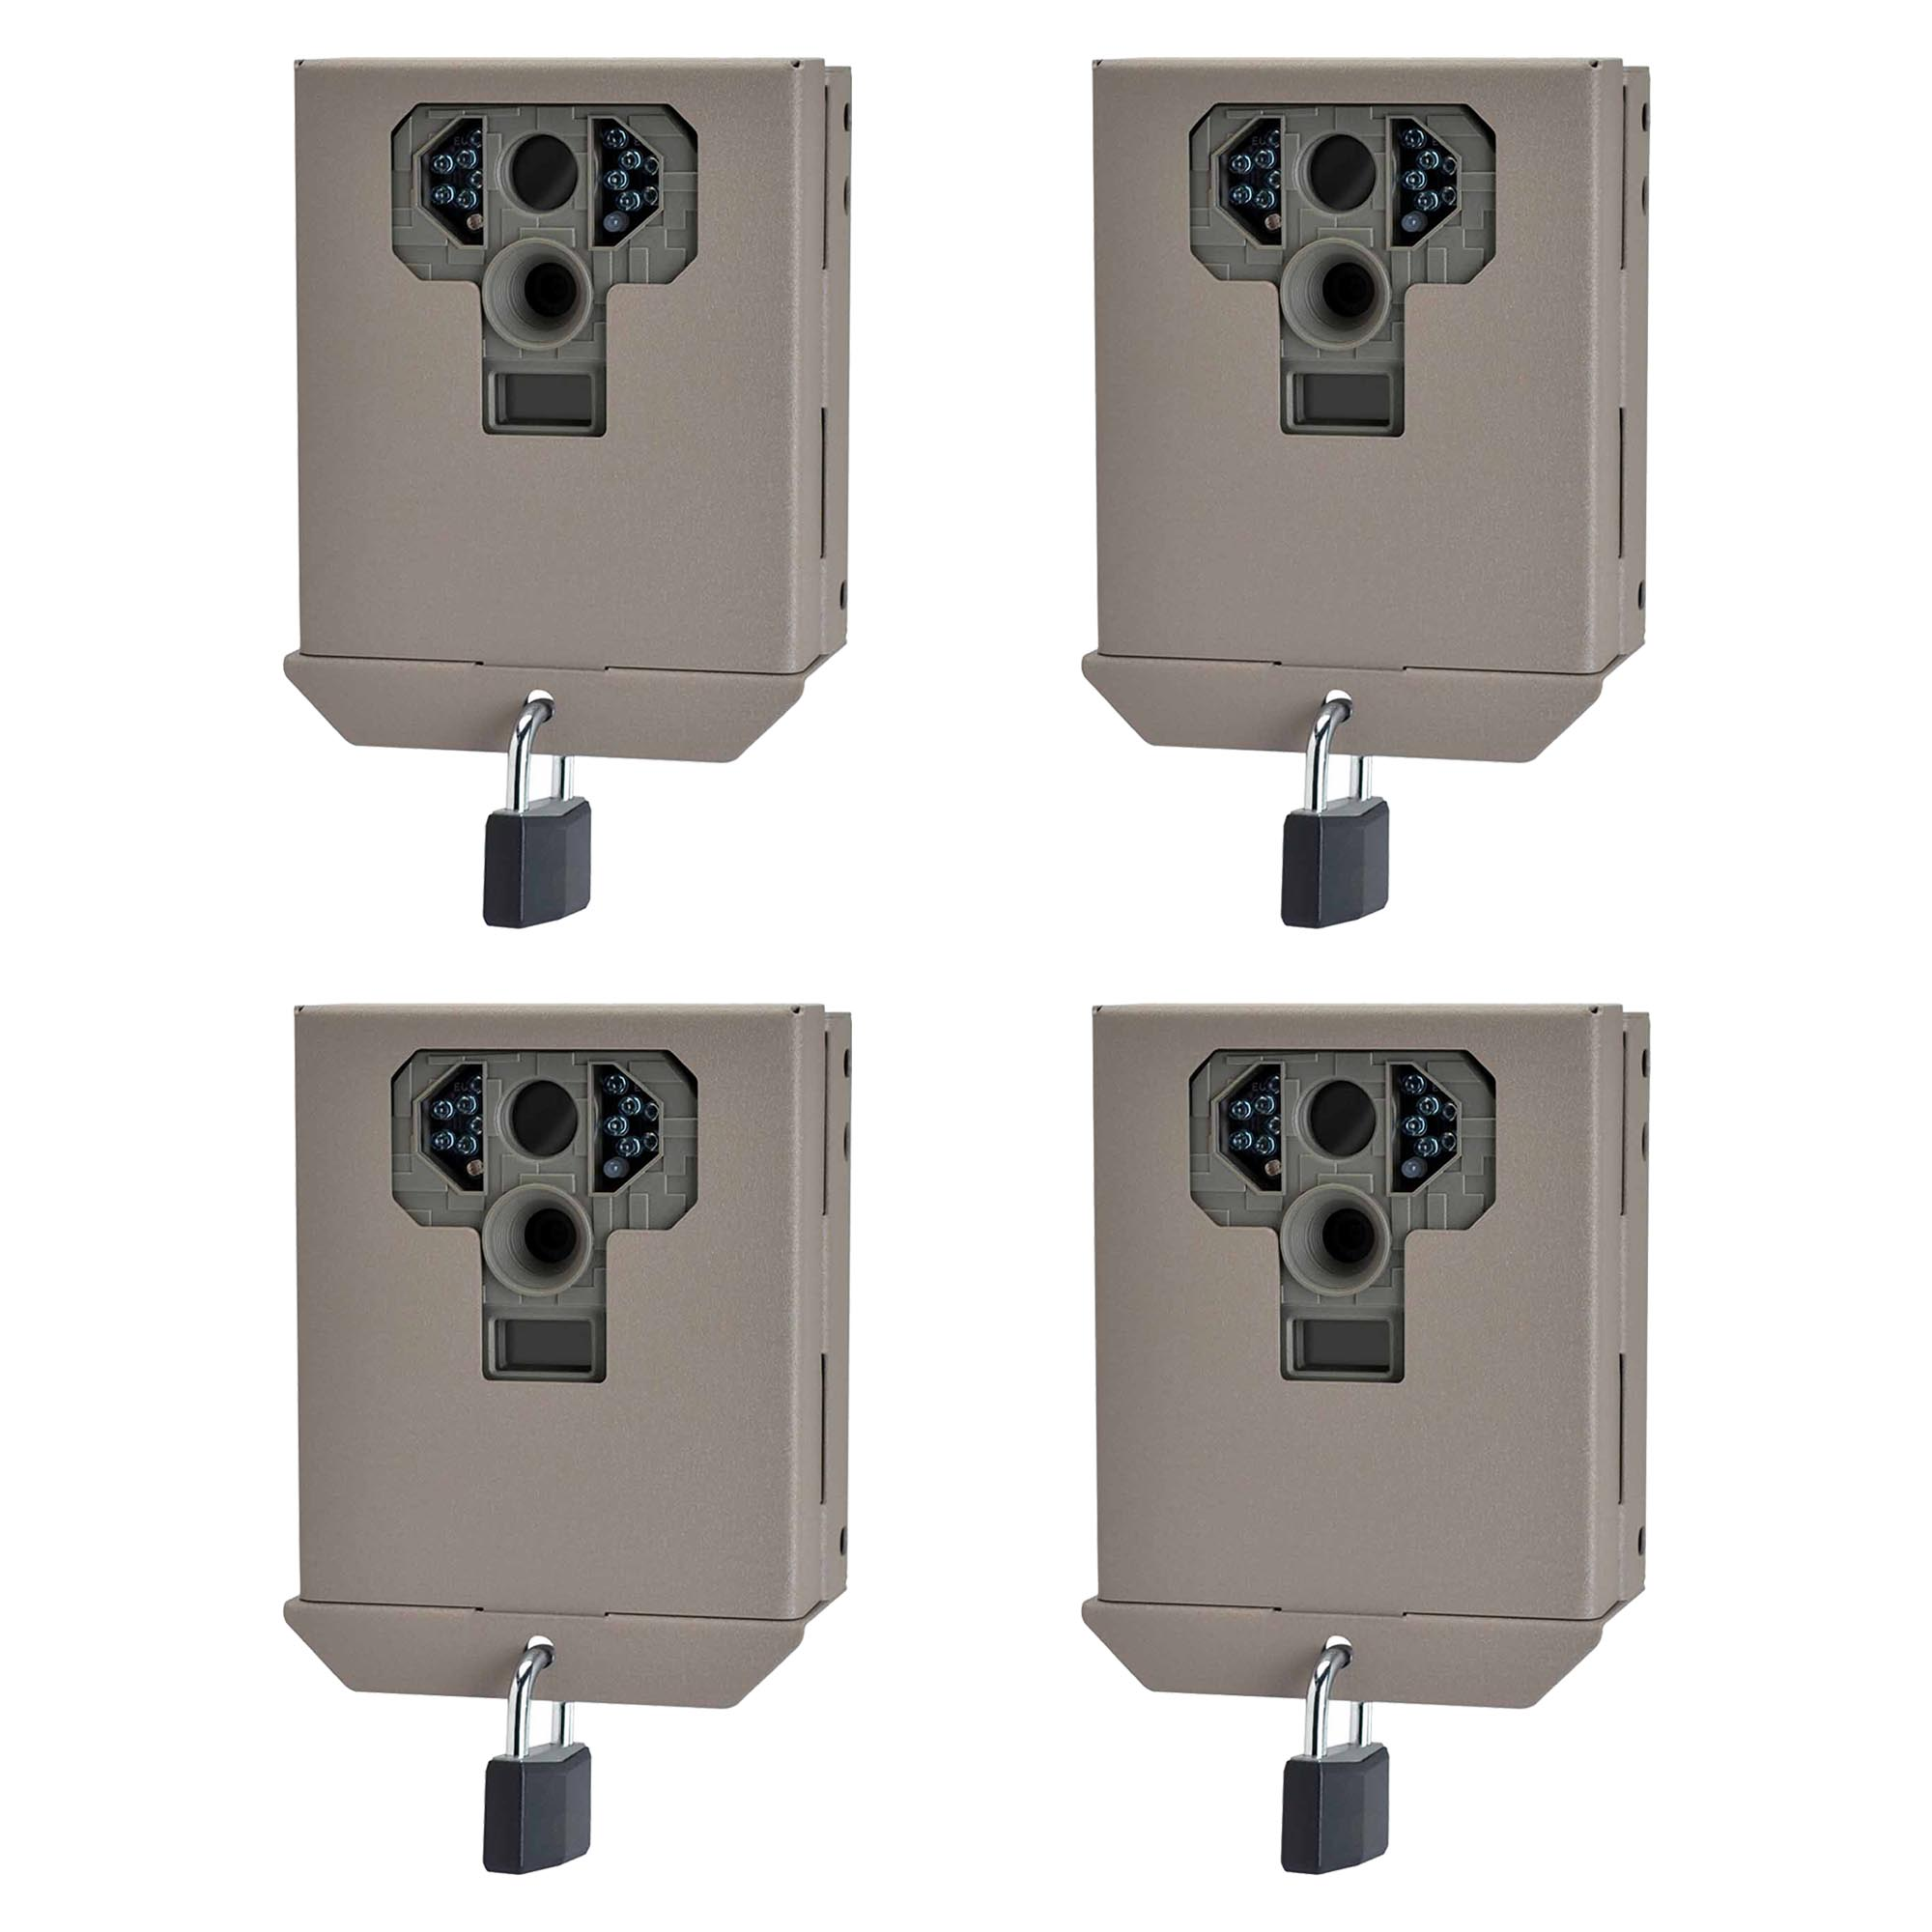 Stealth Cam P Series Game Camera Security & Bear-Proof Box, 4 Pack | STC-BBP12 by Stealth Cam